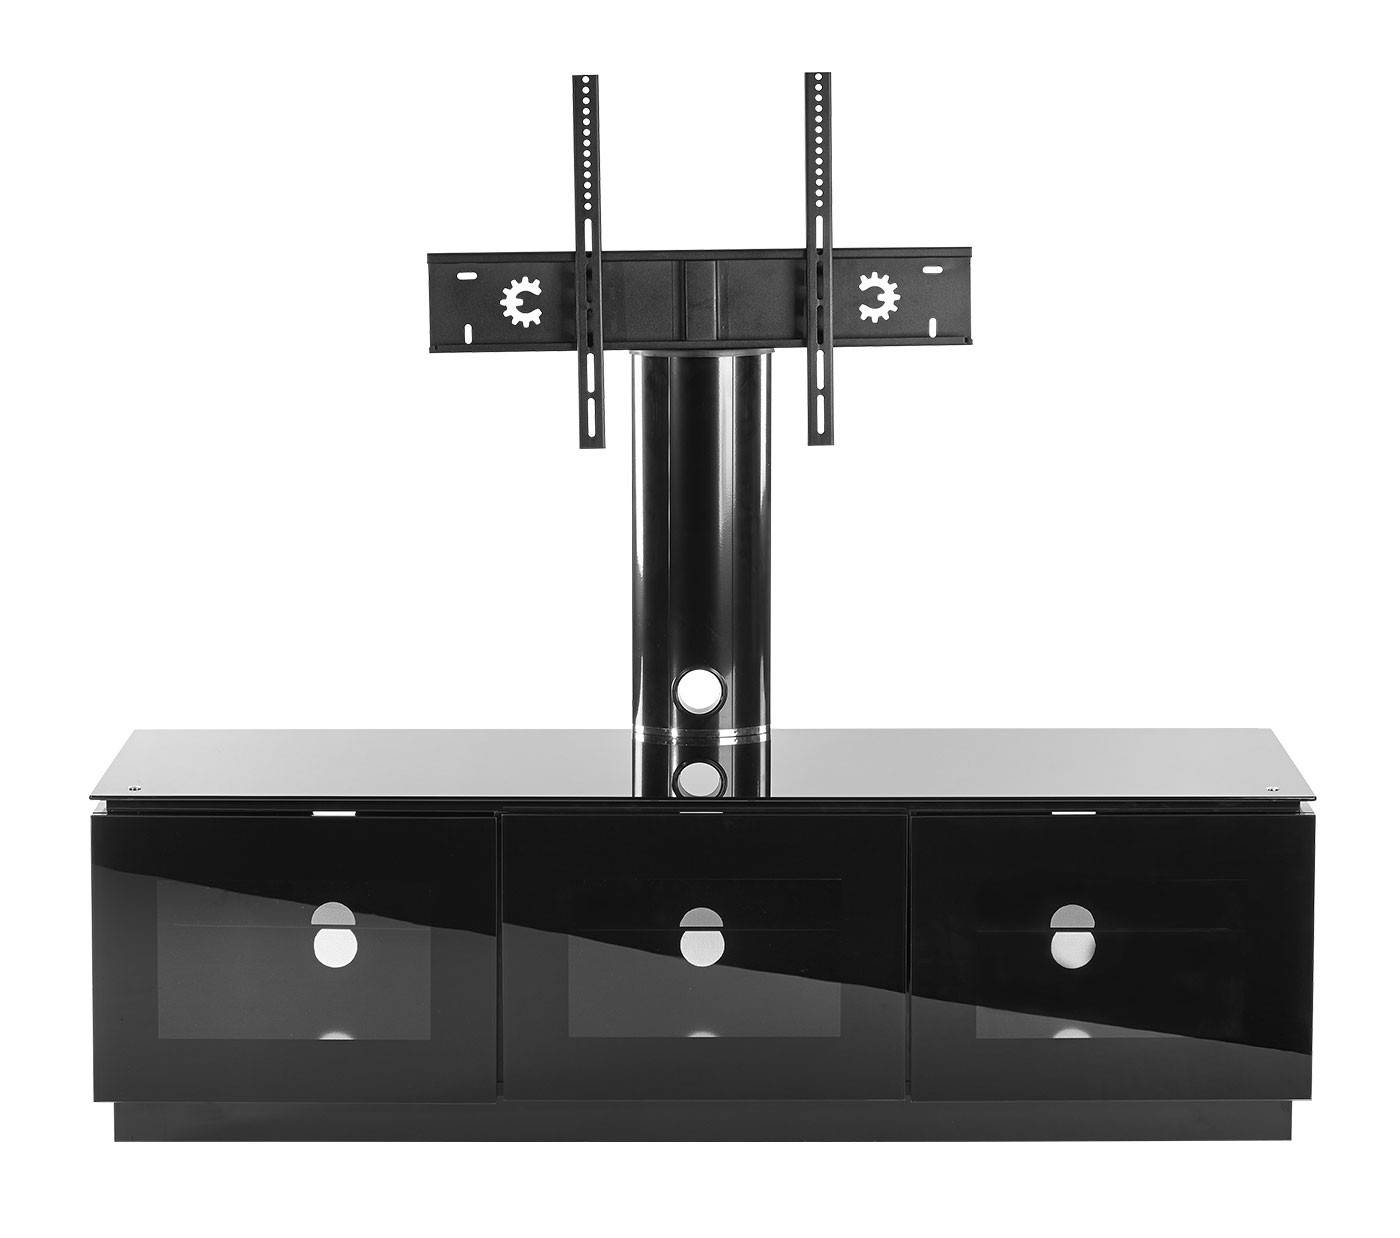 Black Tv Cabinet With Mount For Up To 65 Inch Tv | Mmt-D1500-Xarm with Tv Cabinets (Image 3 of 15)